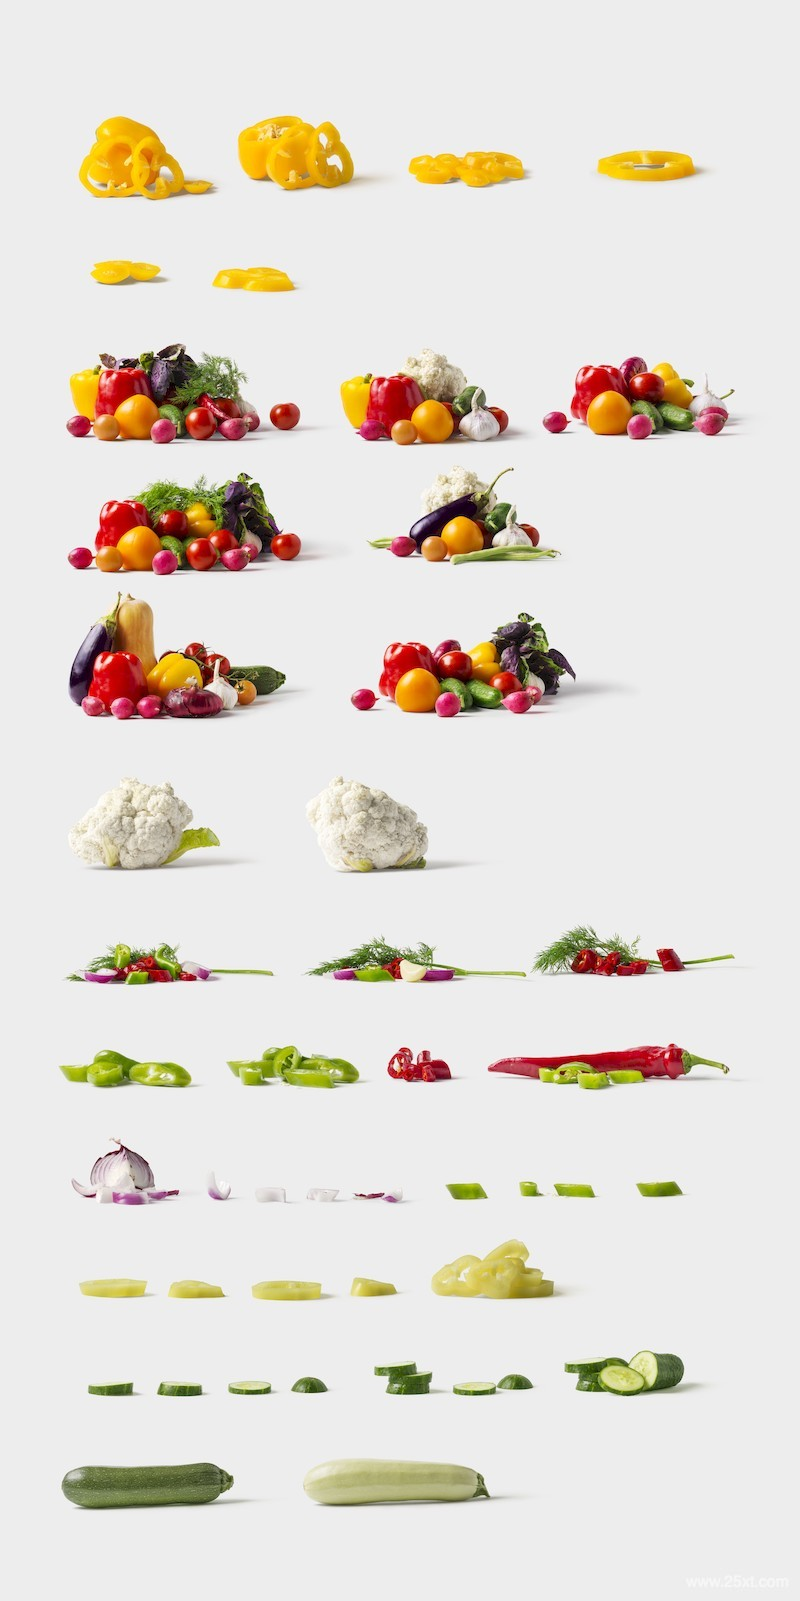 Fruits and Vegetables-7.jpg